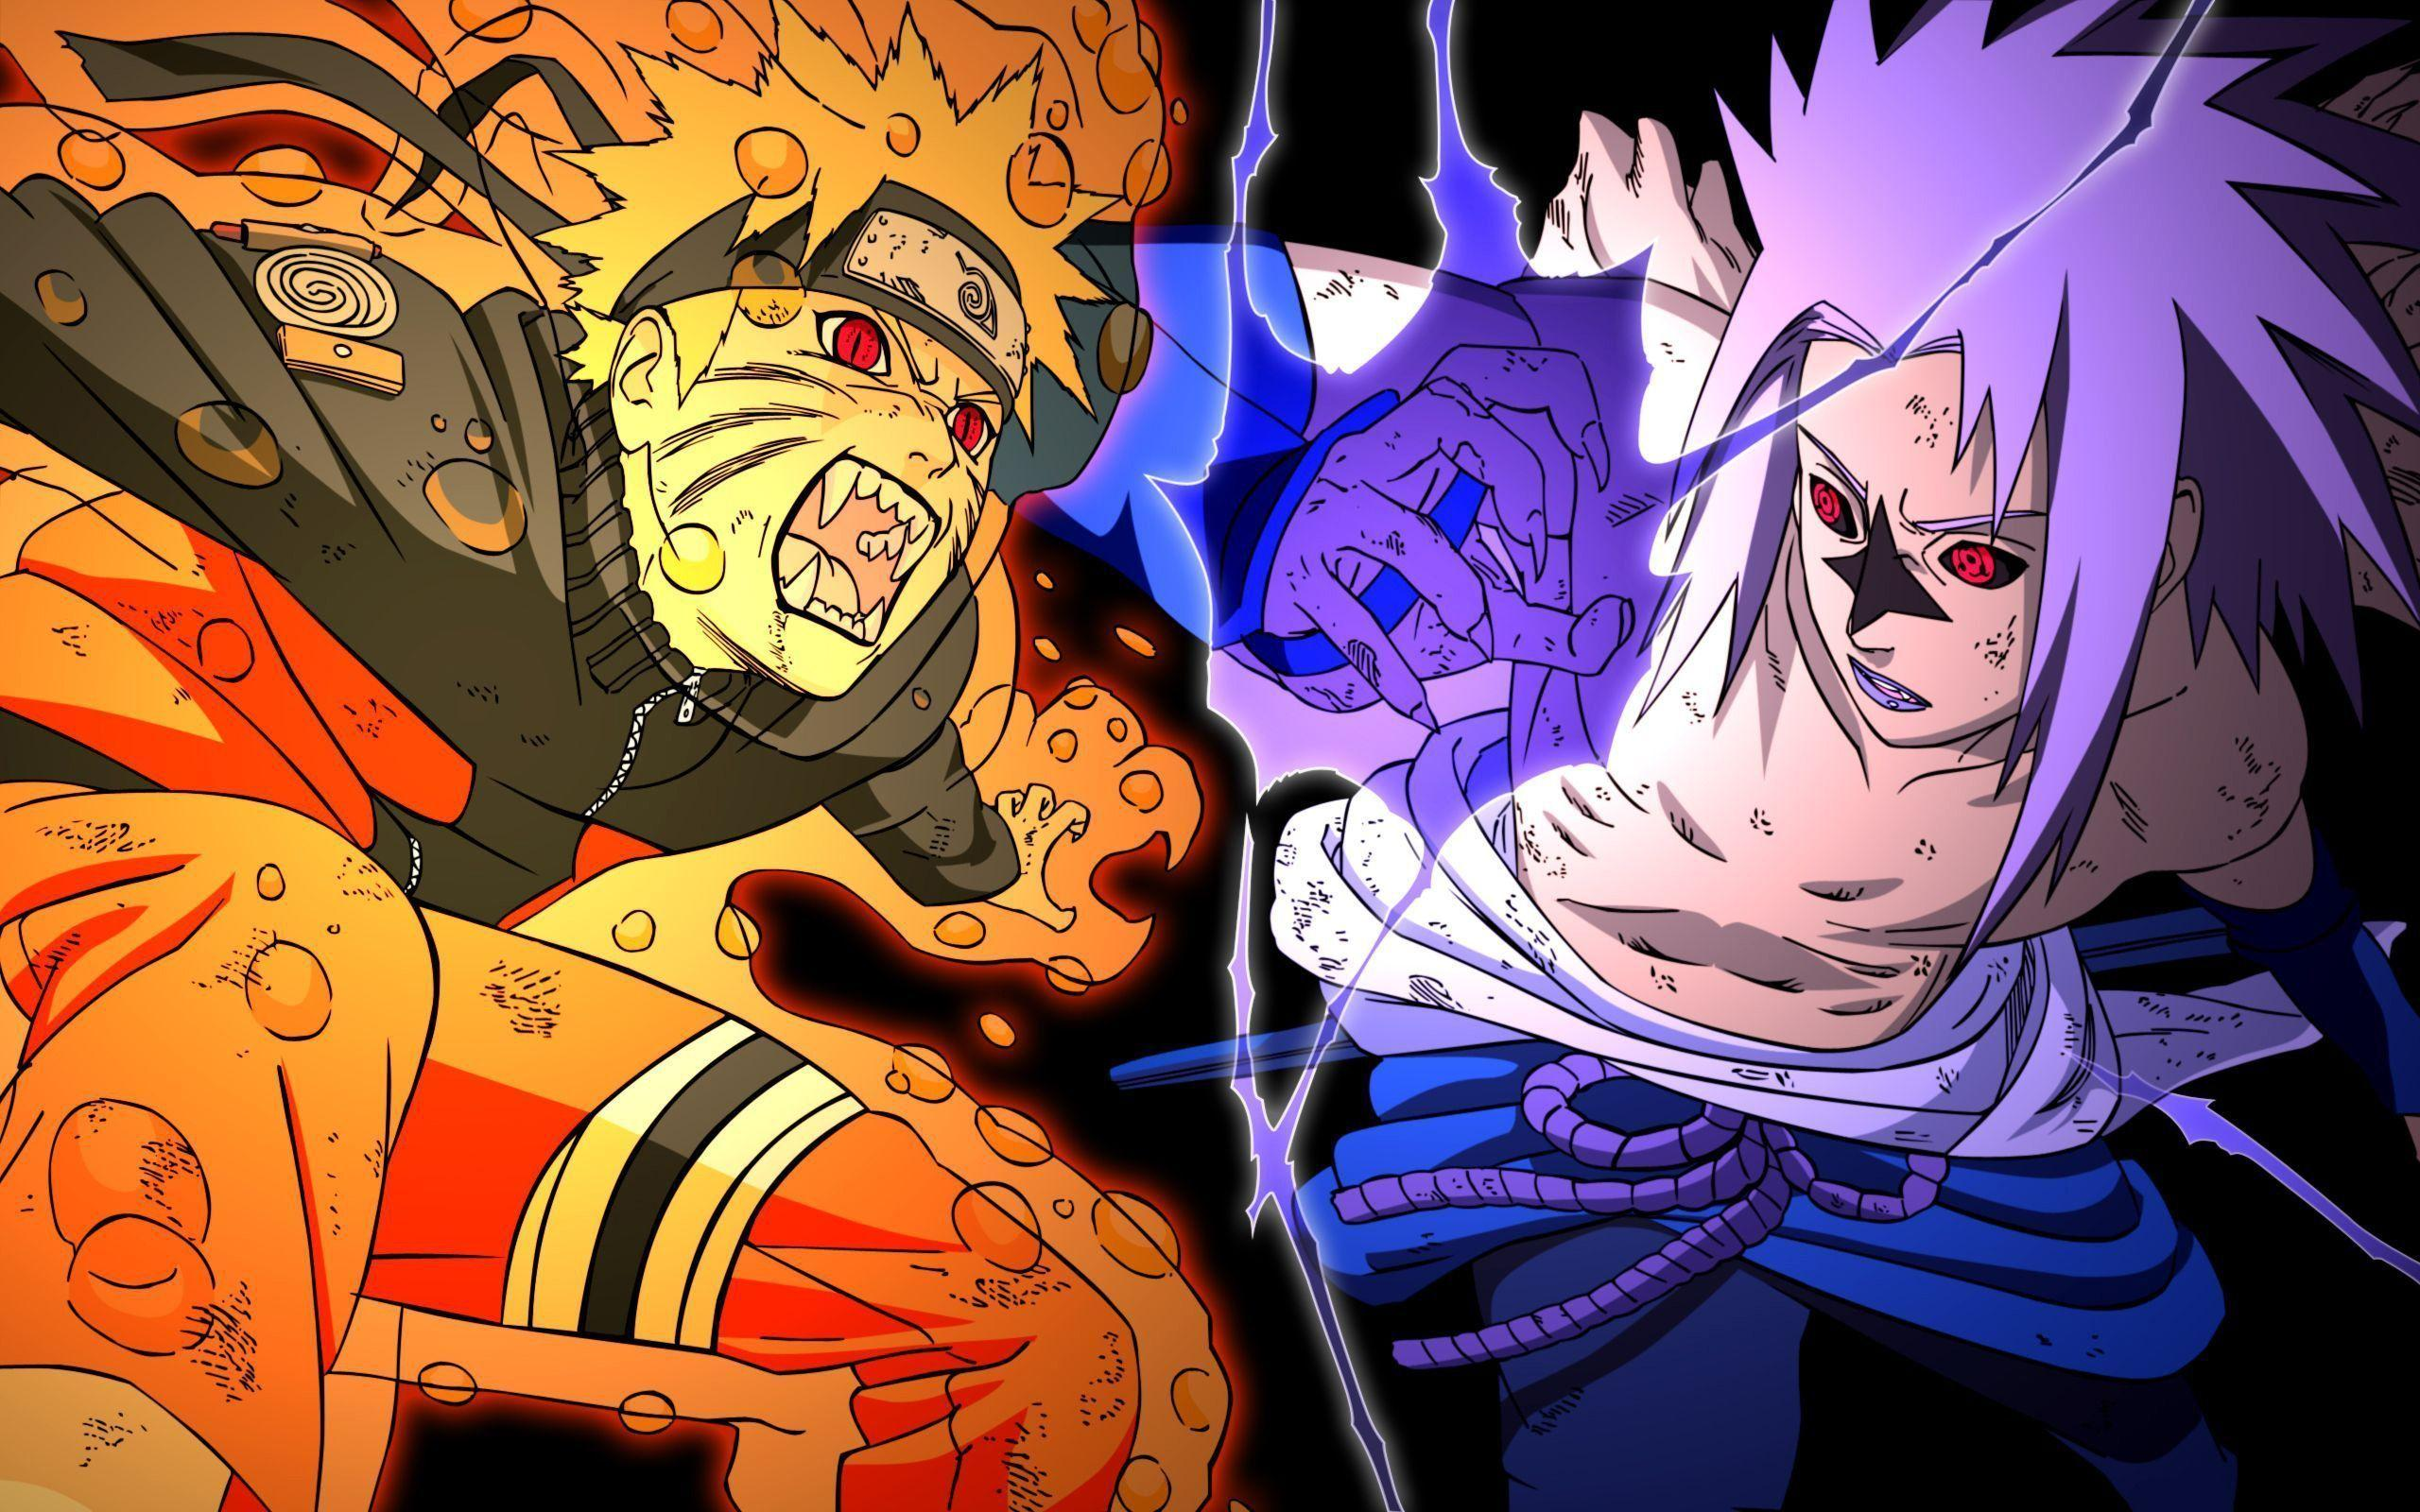 Sasuke Uchiha Vs Naruto Uzumaki Shippuden Wallpapers Wallpaper Cave